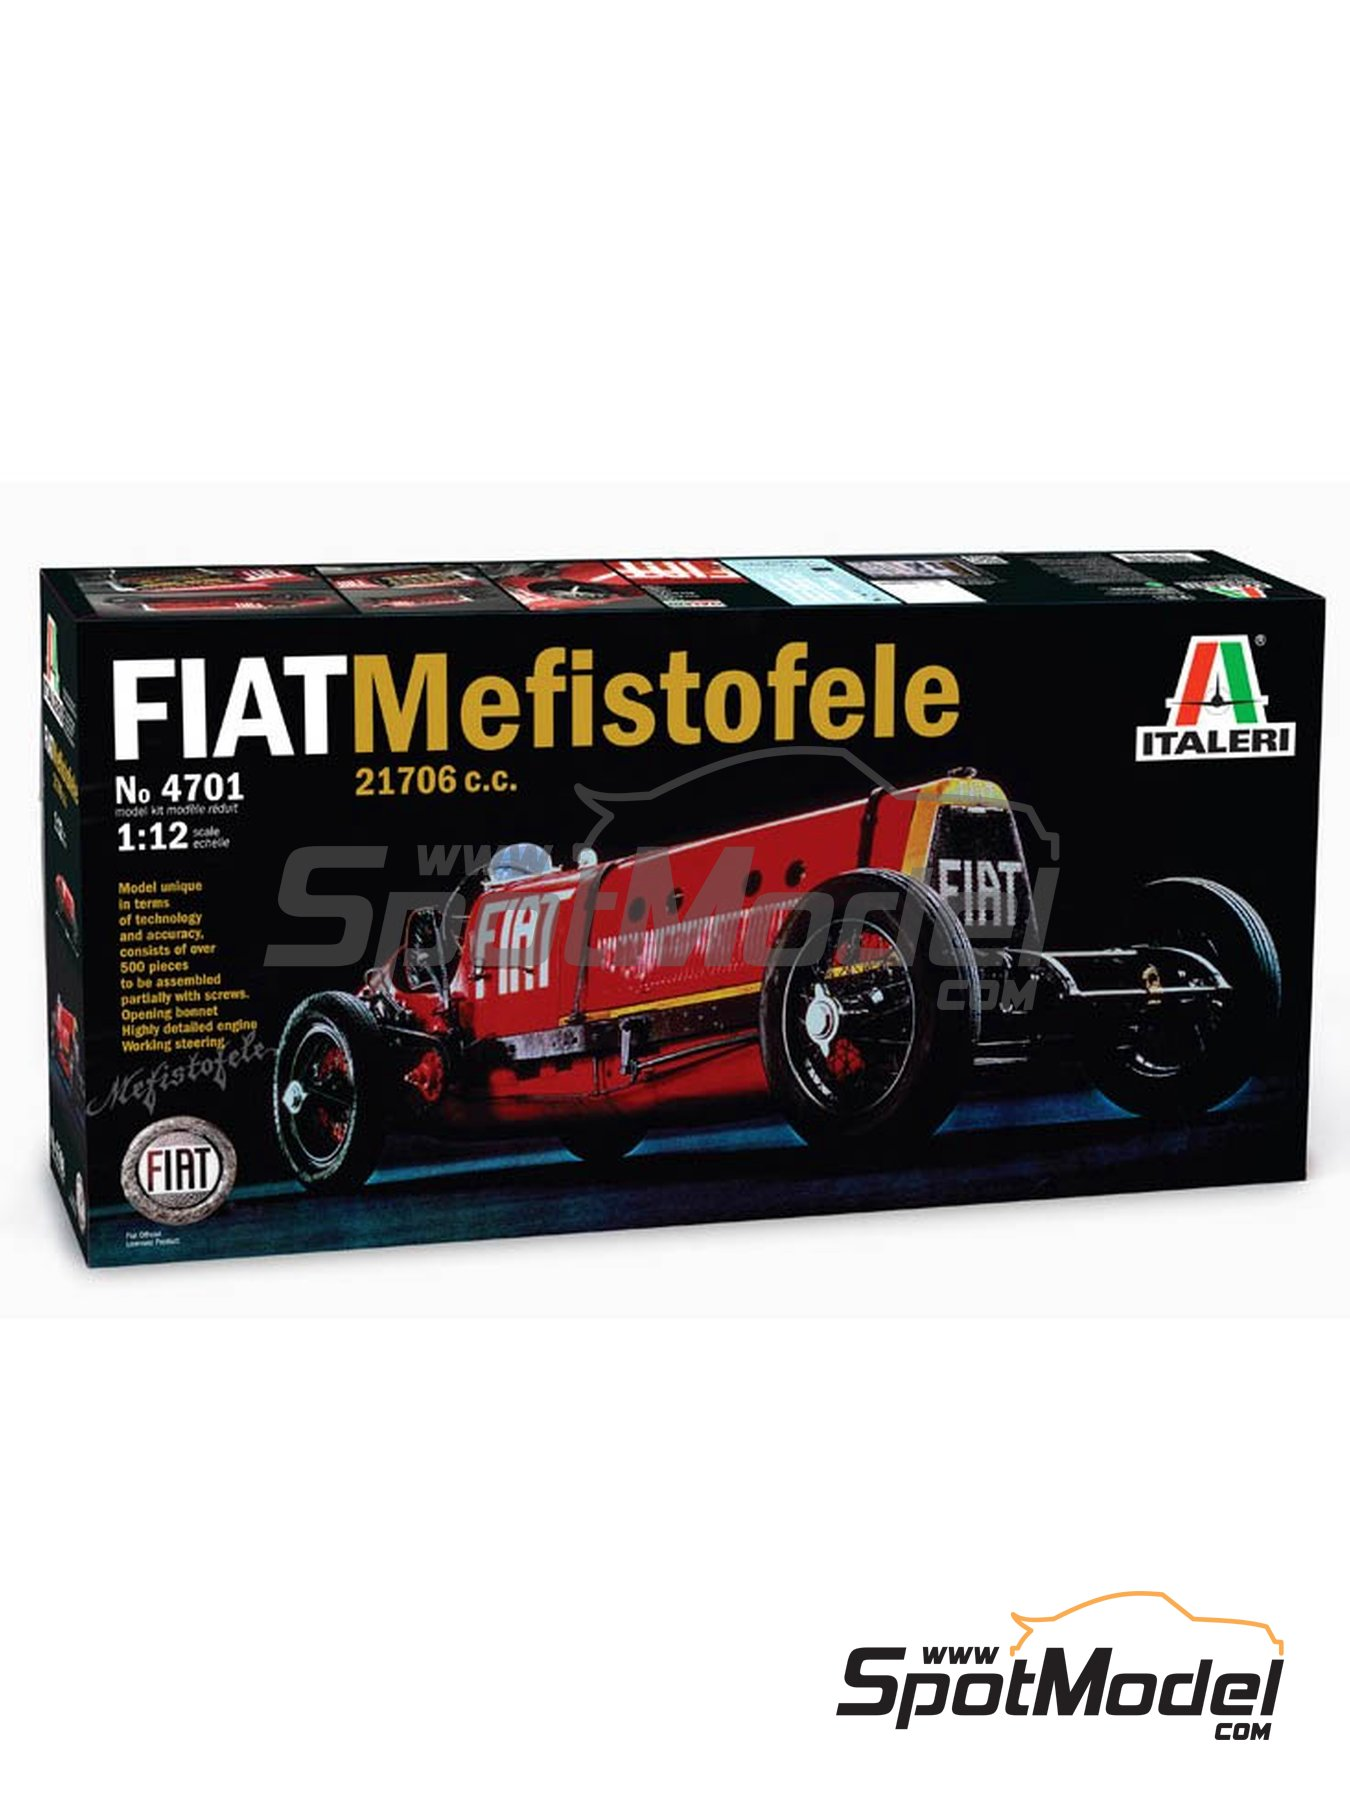 Fiat Mefistofele - World Landspeed Record 1924 | Model car kit in 1/12 scale manufactured by Italeri (ref. 4701) image